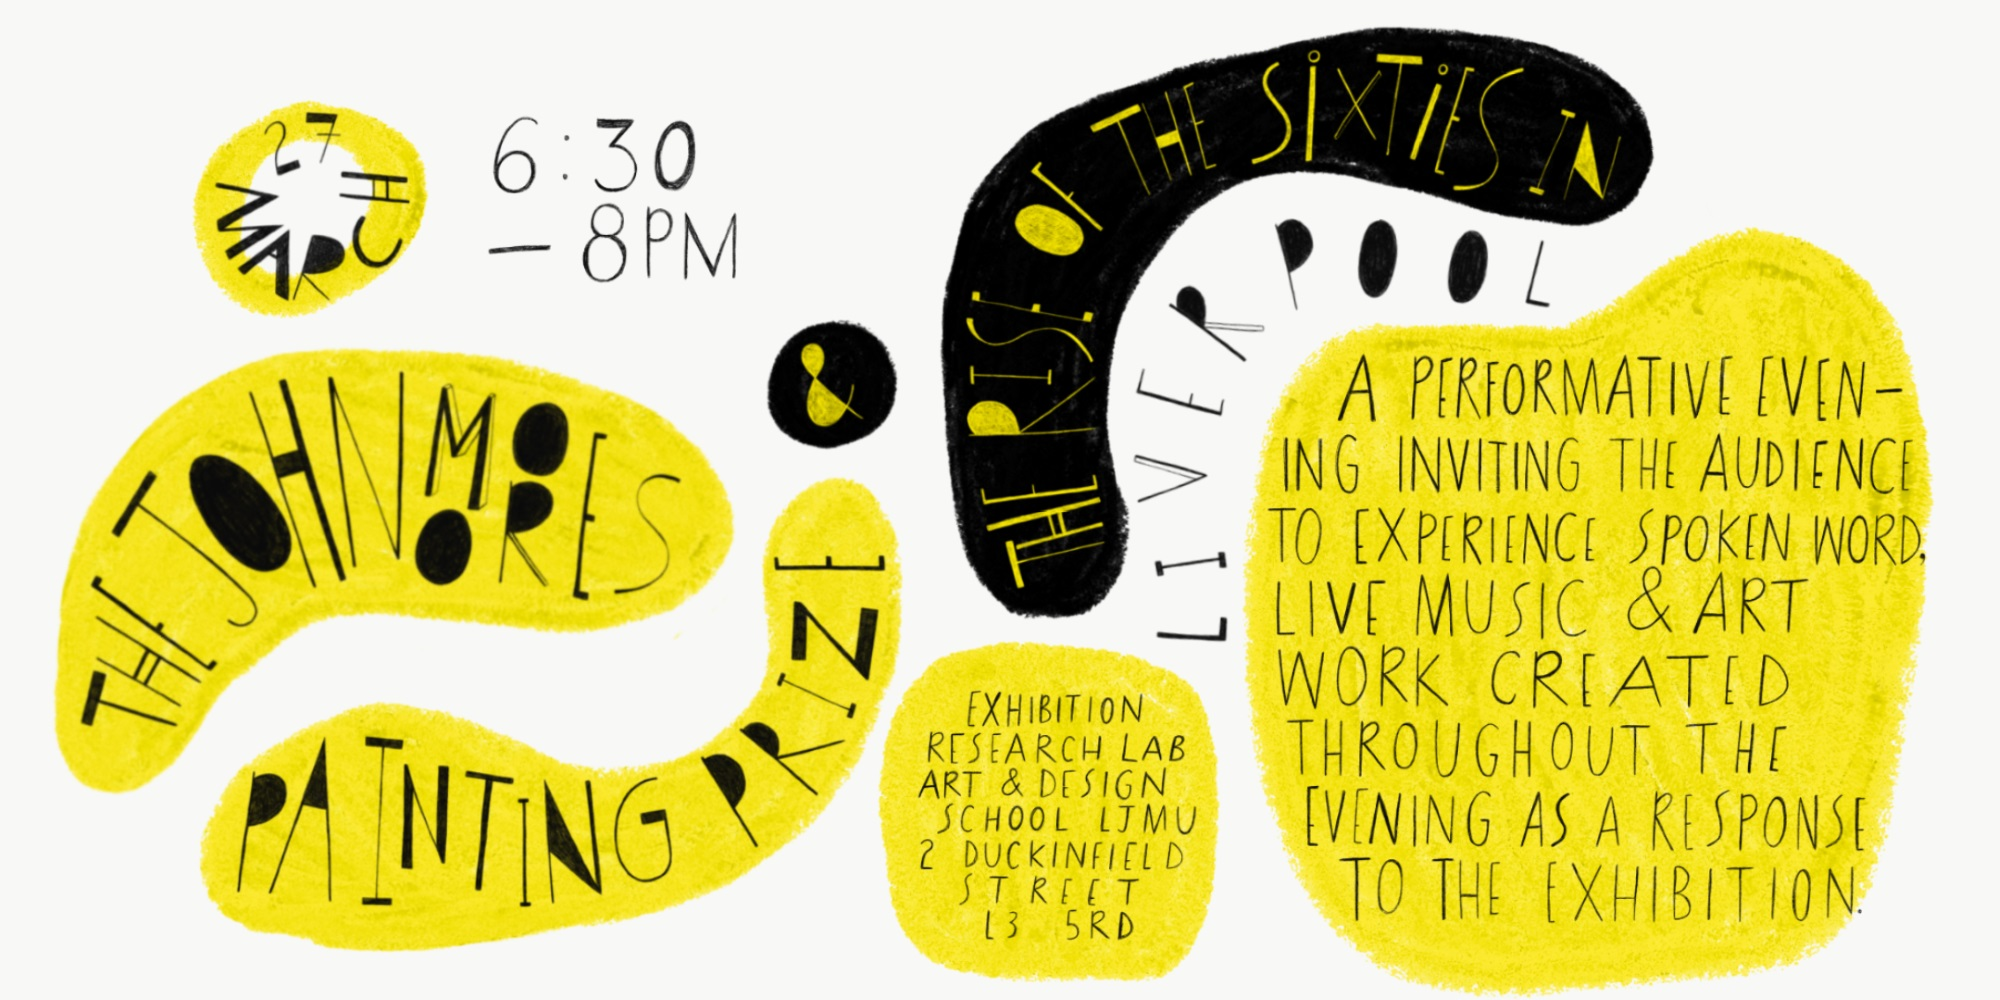 Exhibition Research Lab: Rise- Performative evening: visual art, live music and spoken word